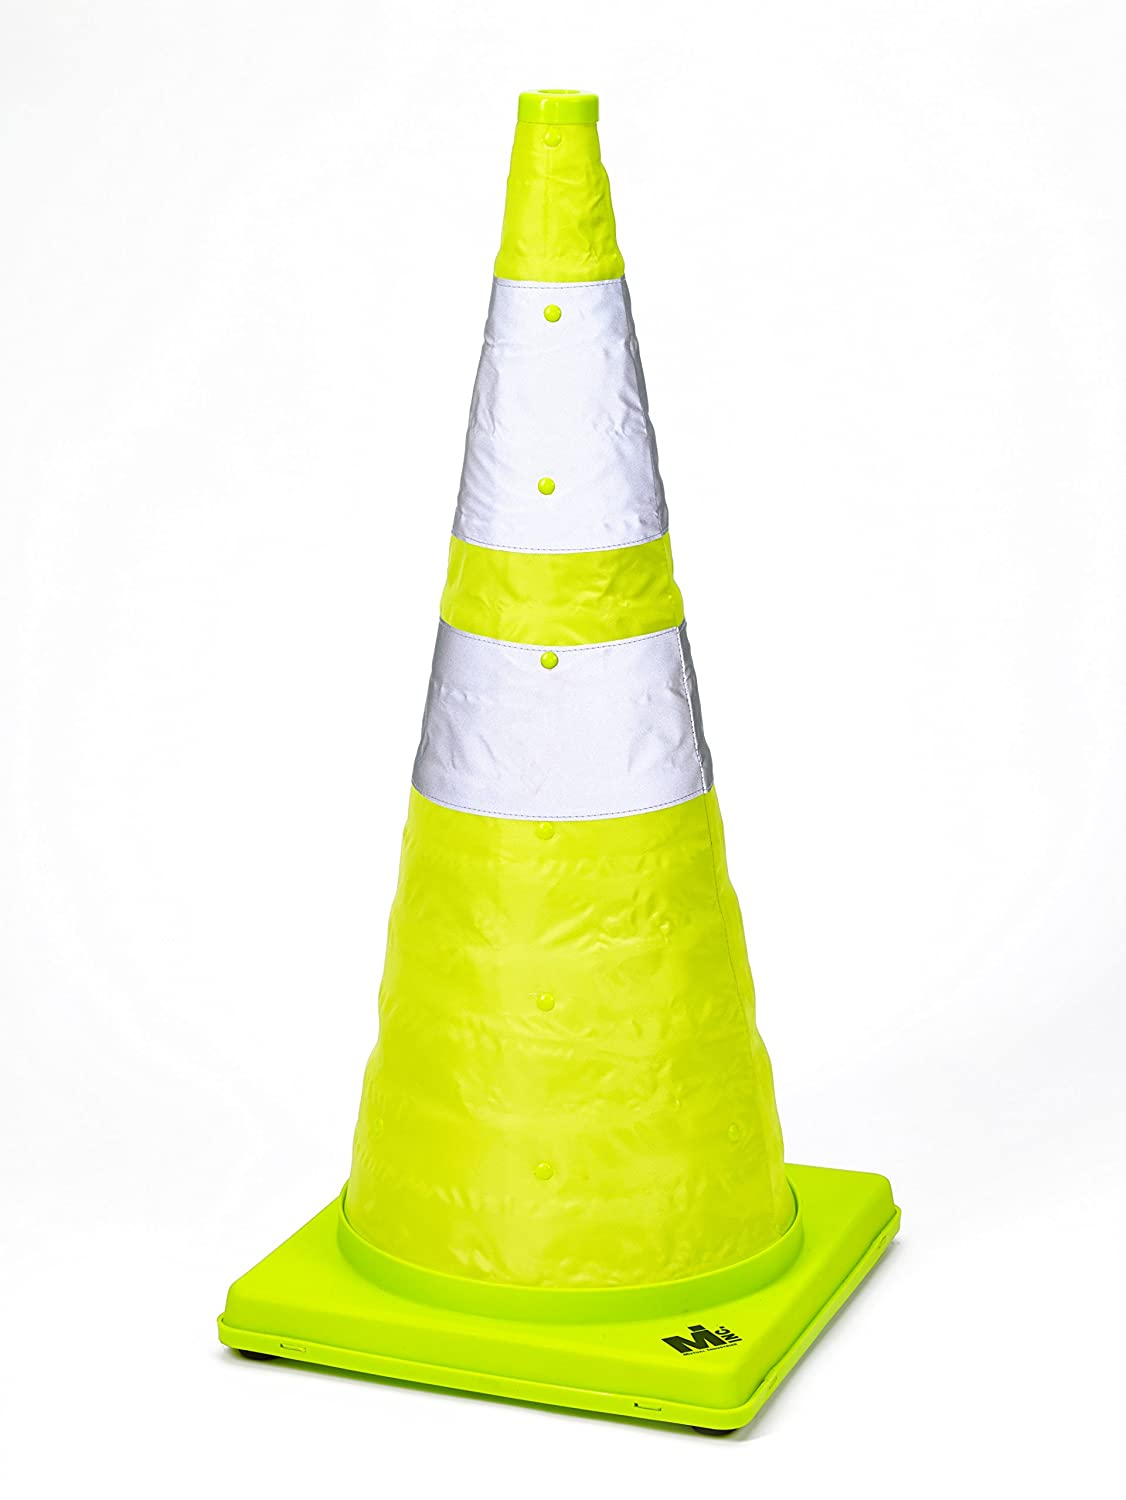 Shipping included Mutual Industries Collapsible Reflective Sales of SALE items from new works with Traffic Insid Cone